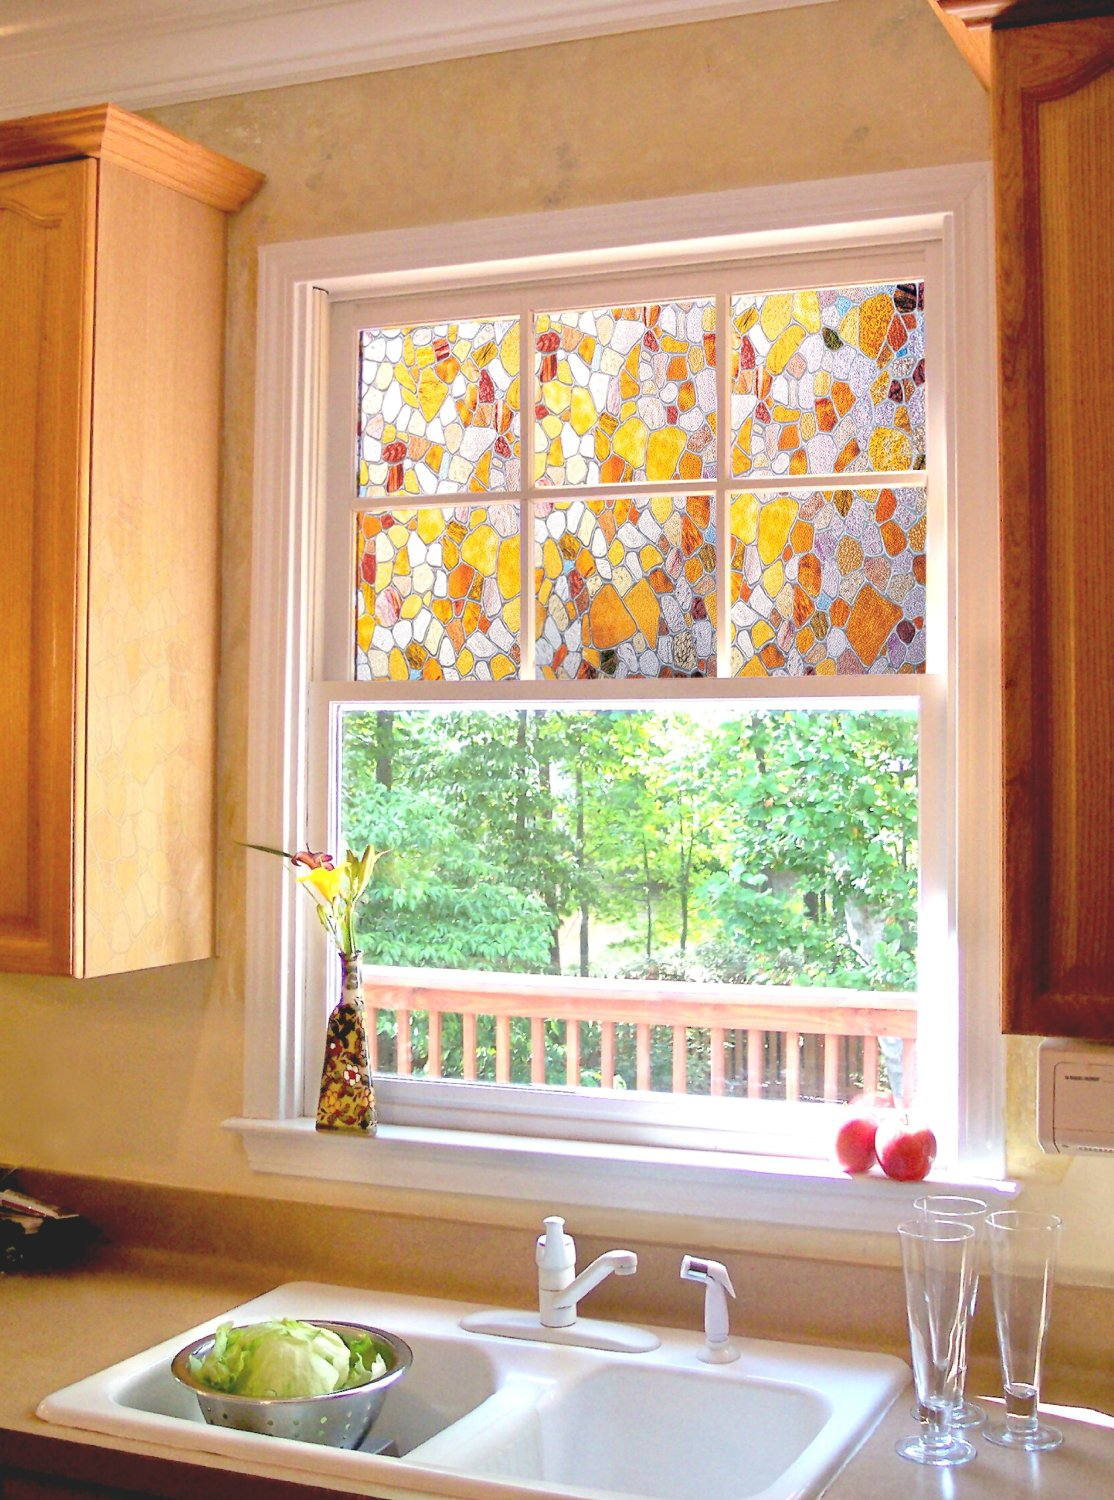 About stained glass window film what you need to know for Decorative window film stained glass victorian